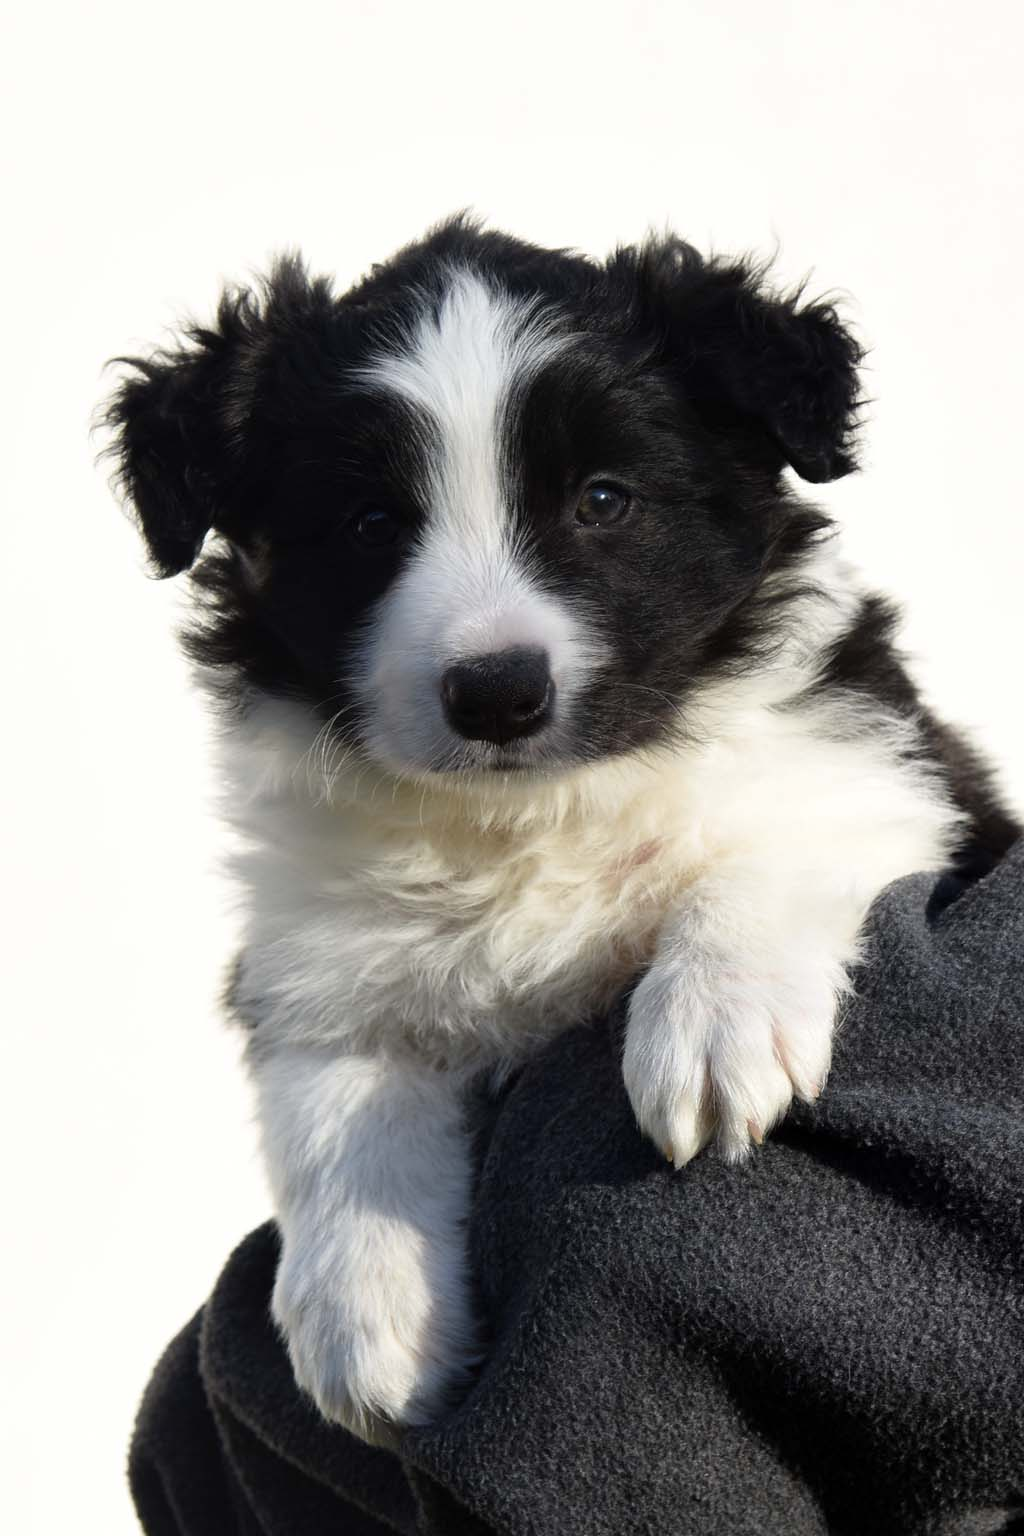 2015 12 12 Just the one and only von den Traumpfoten DSC 3633